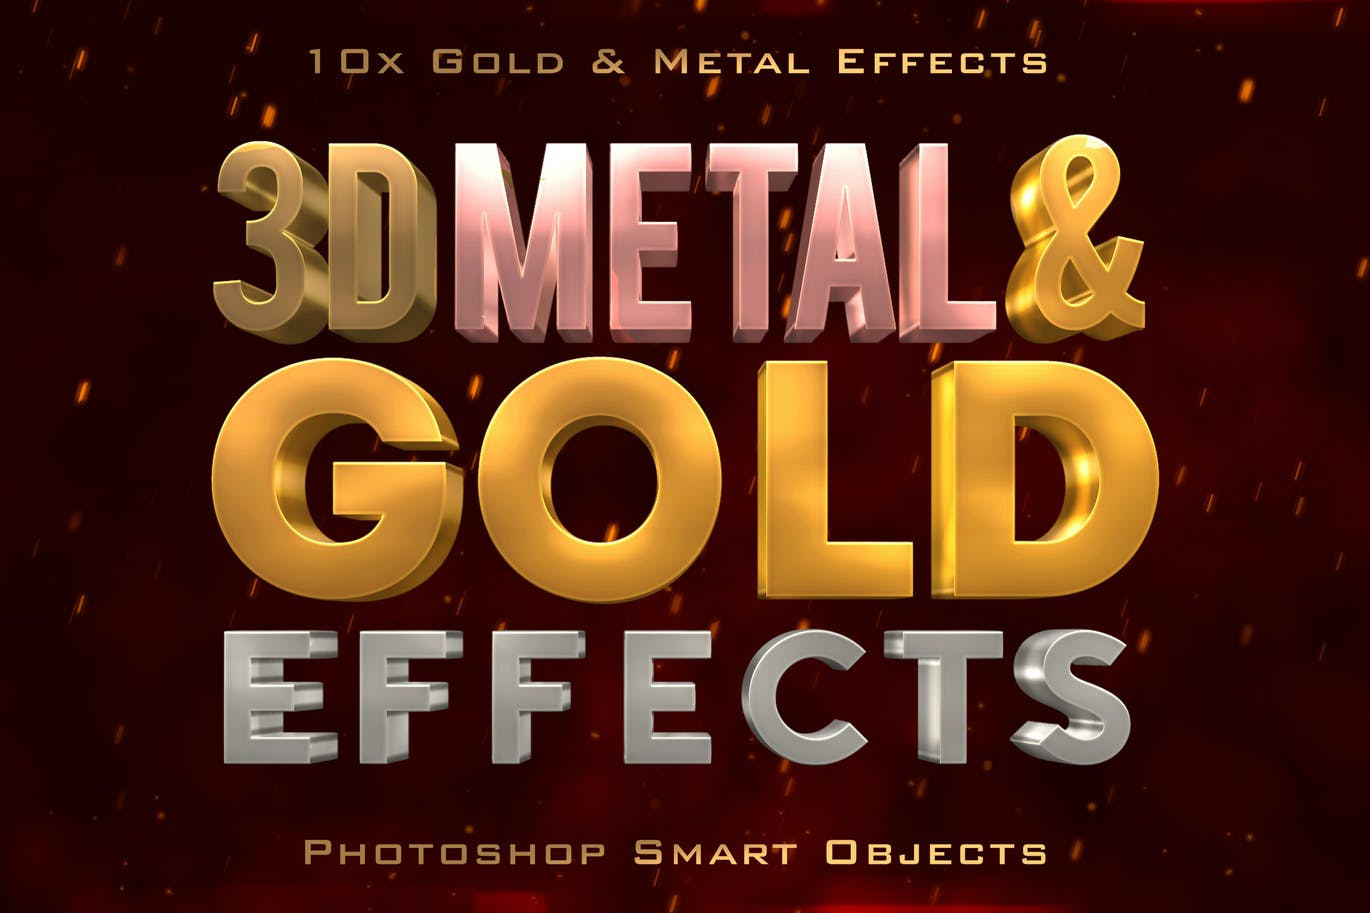 3D Metal & Gold Effects for Photoshop